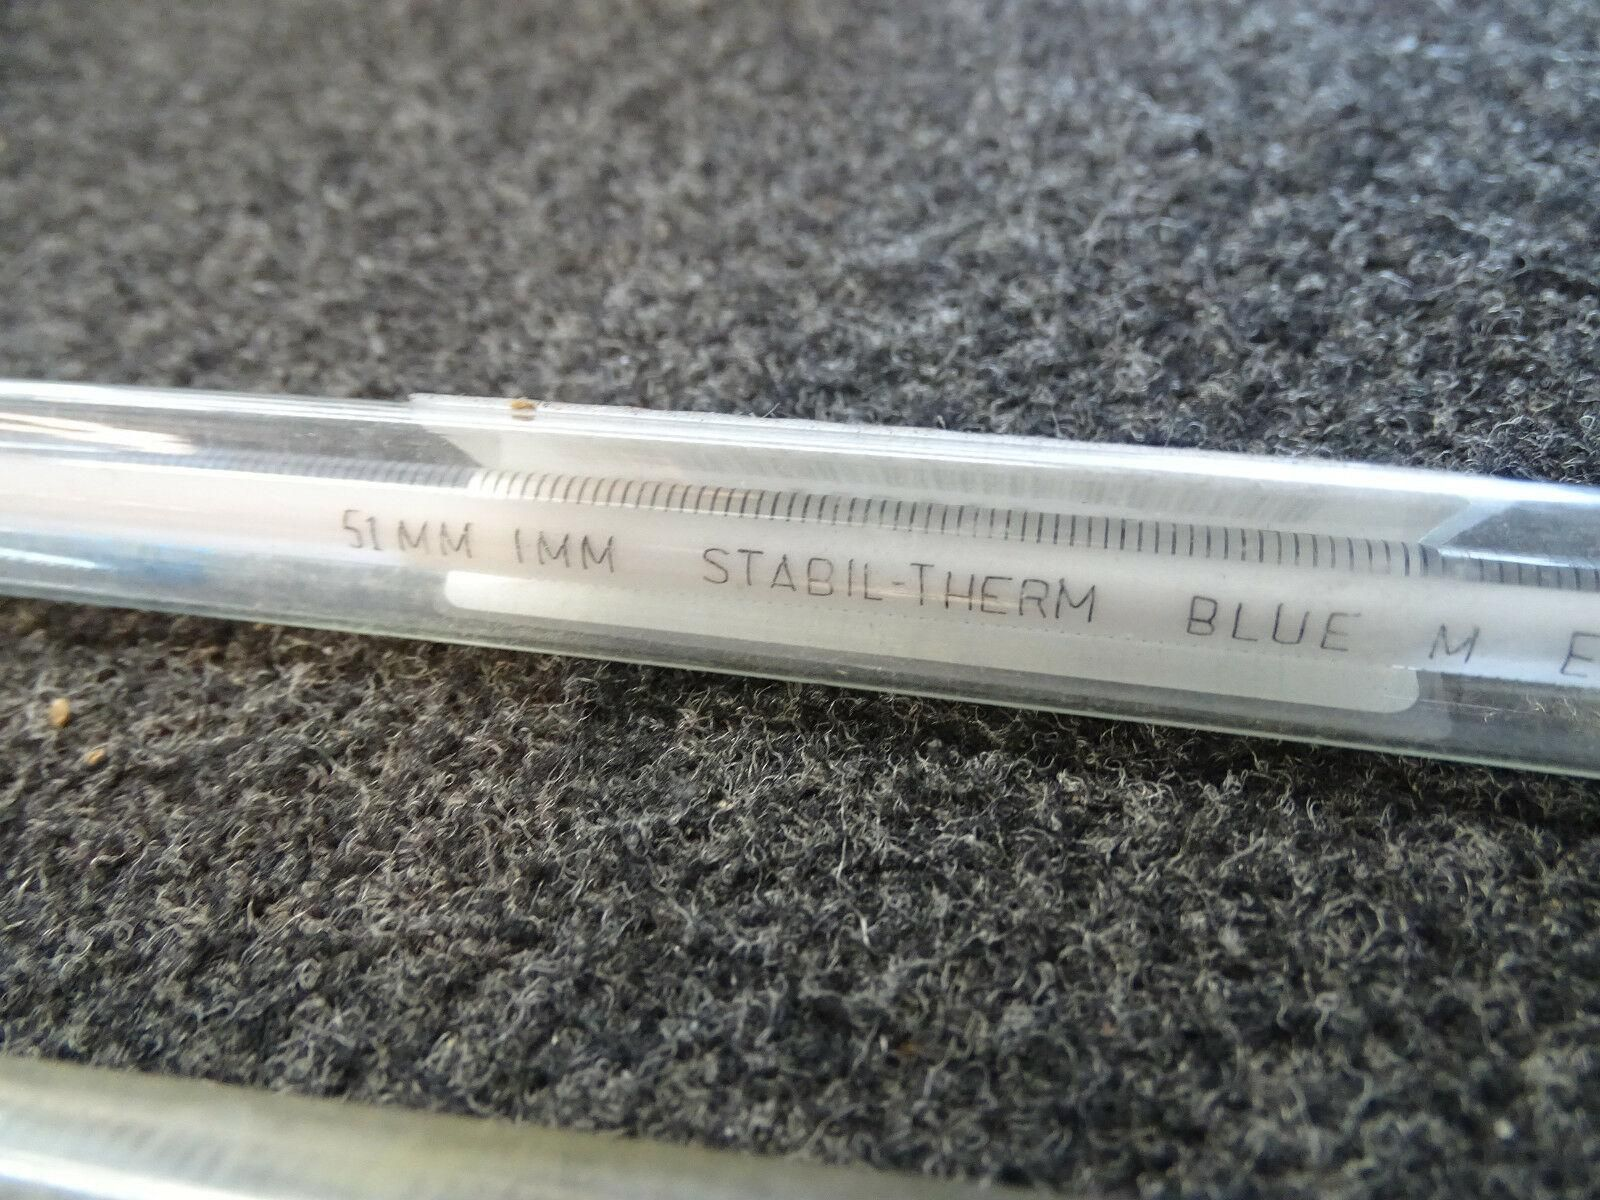 7 Laboratory Thermometers Blue M Propper Trophy Northrup Farenheit GFI.